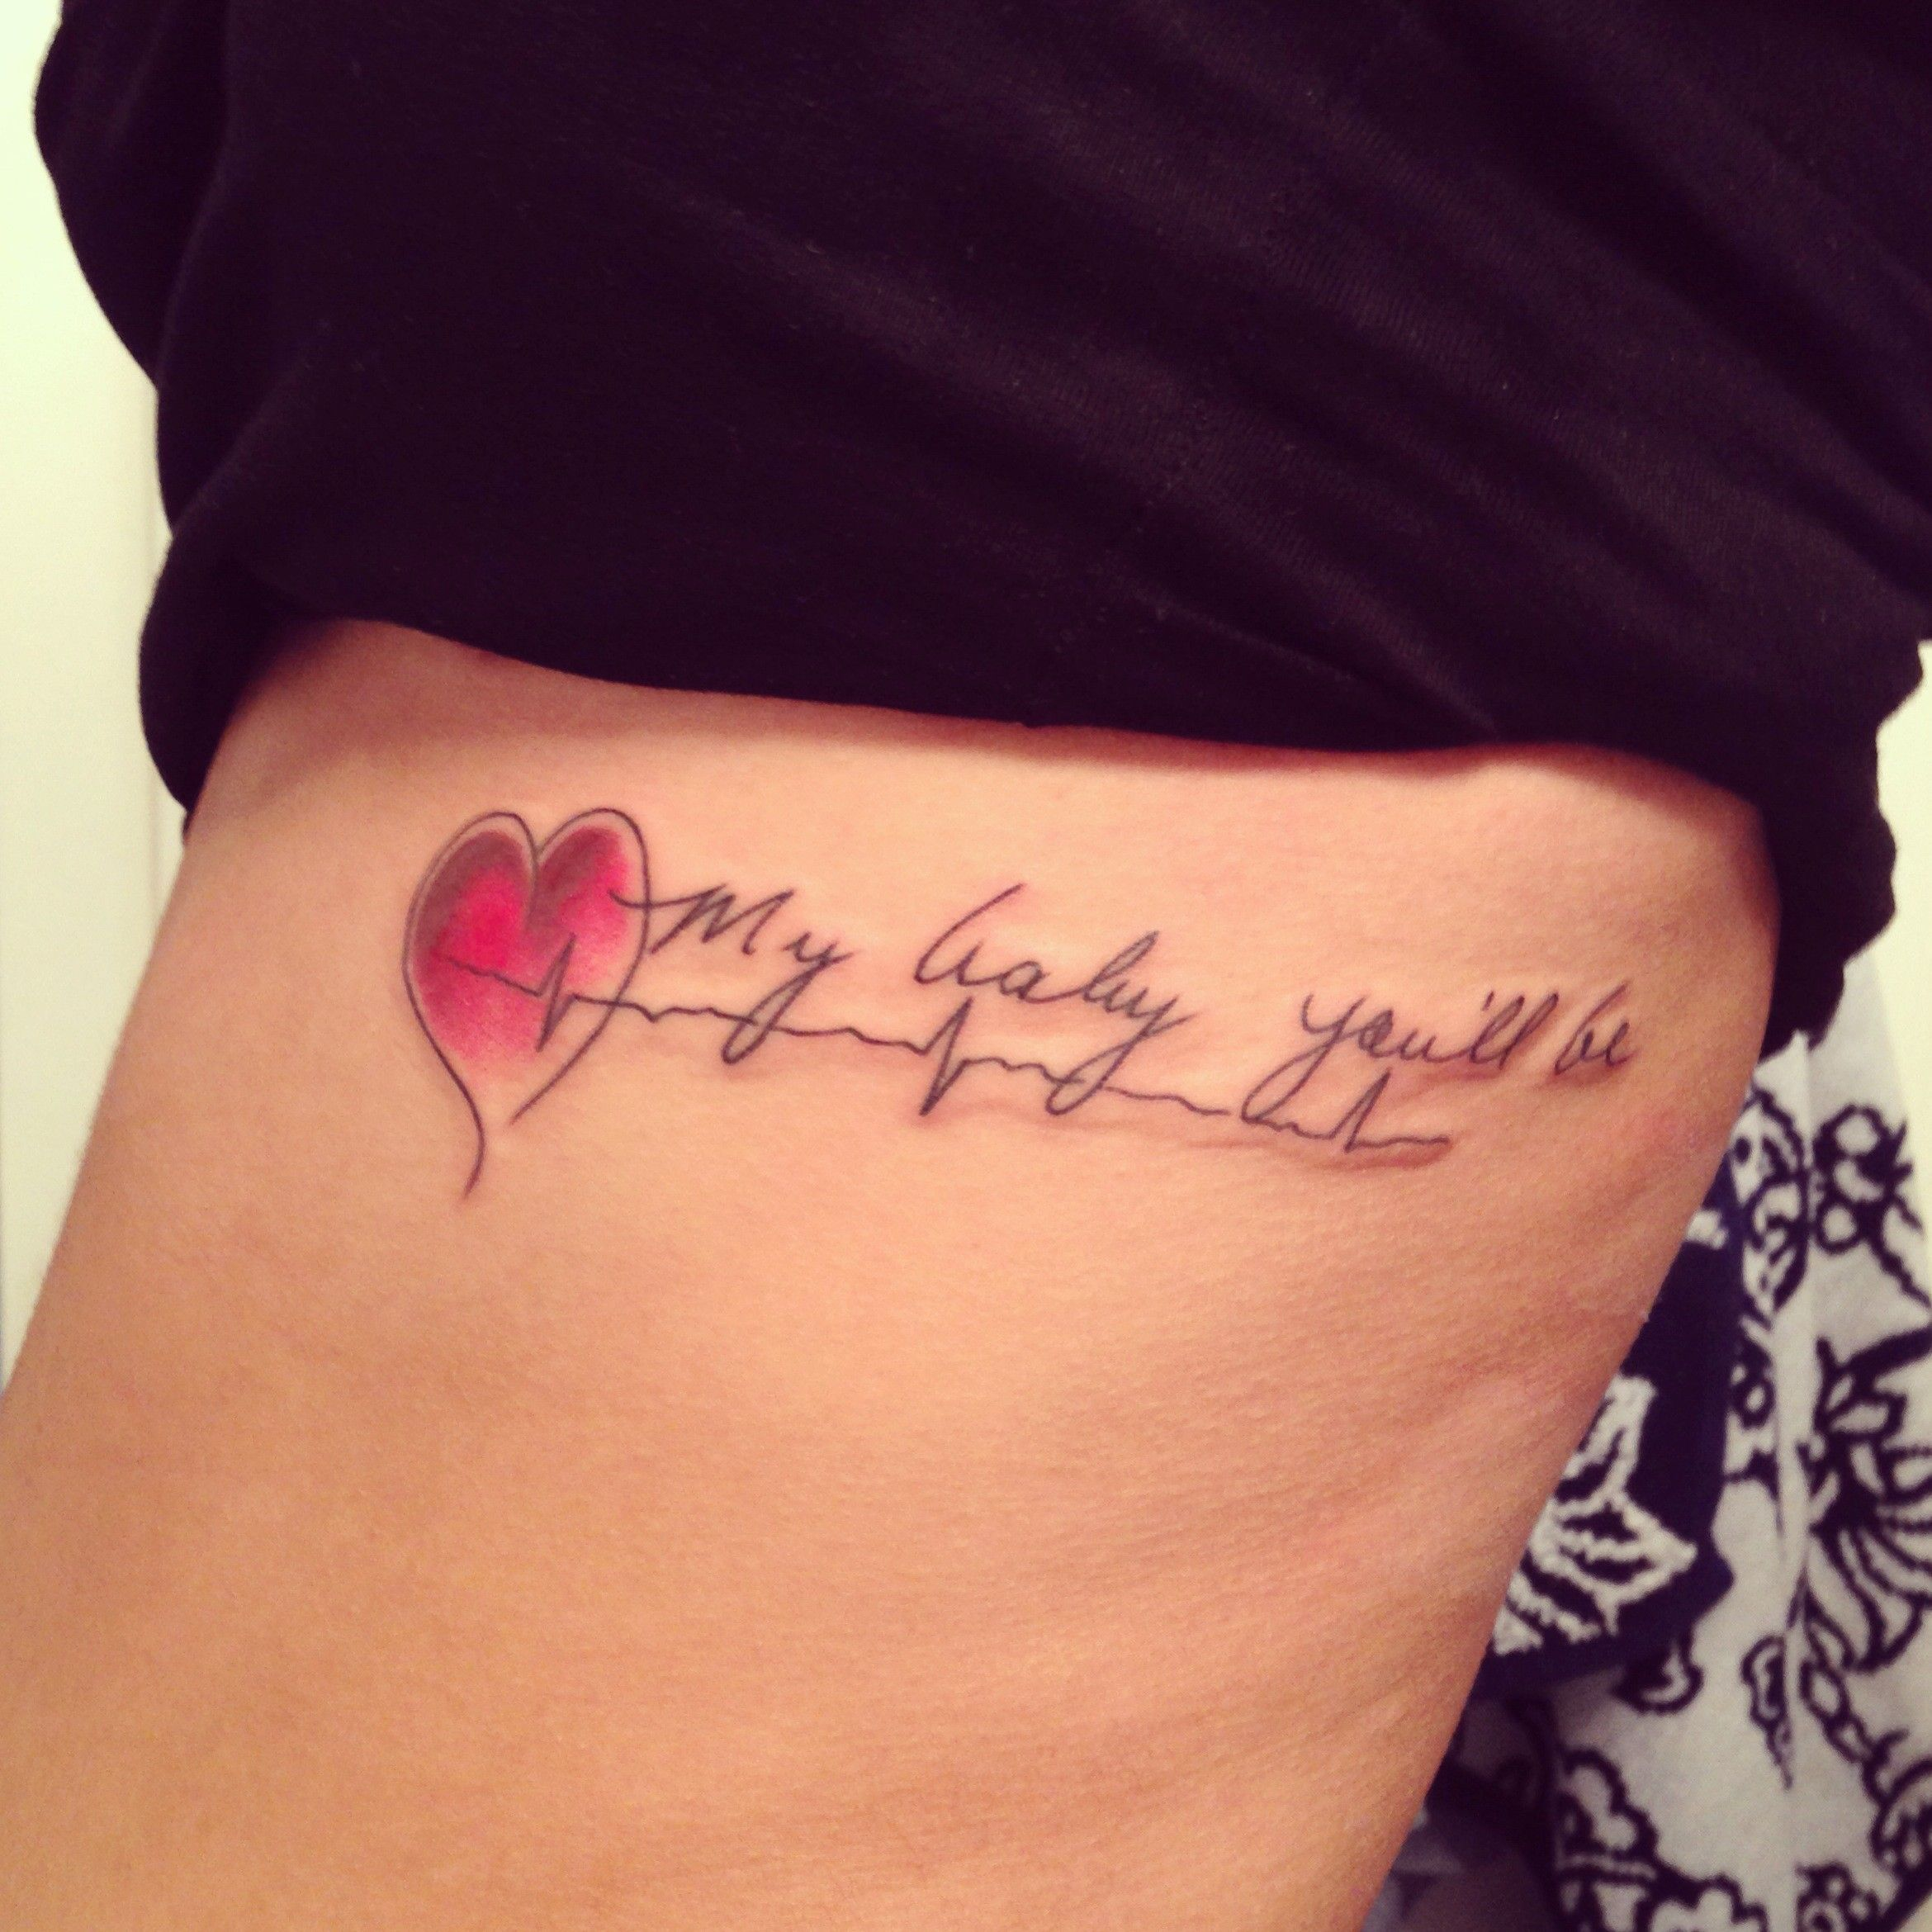 Mom Dad Heartbeat Tattoo: Unique Red Heart & Heartbeat Tattoo Quotes On Side